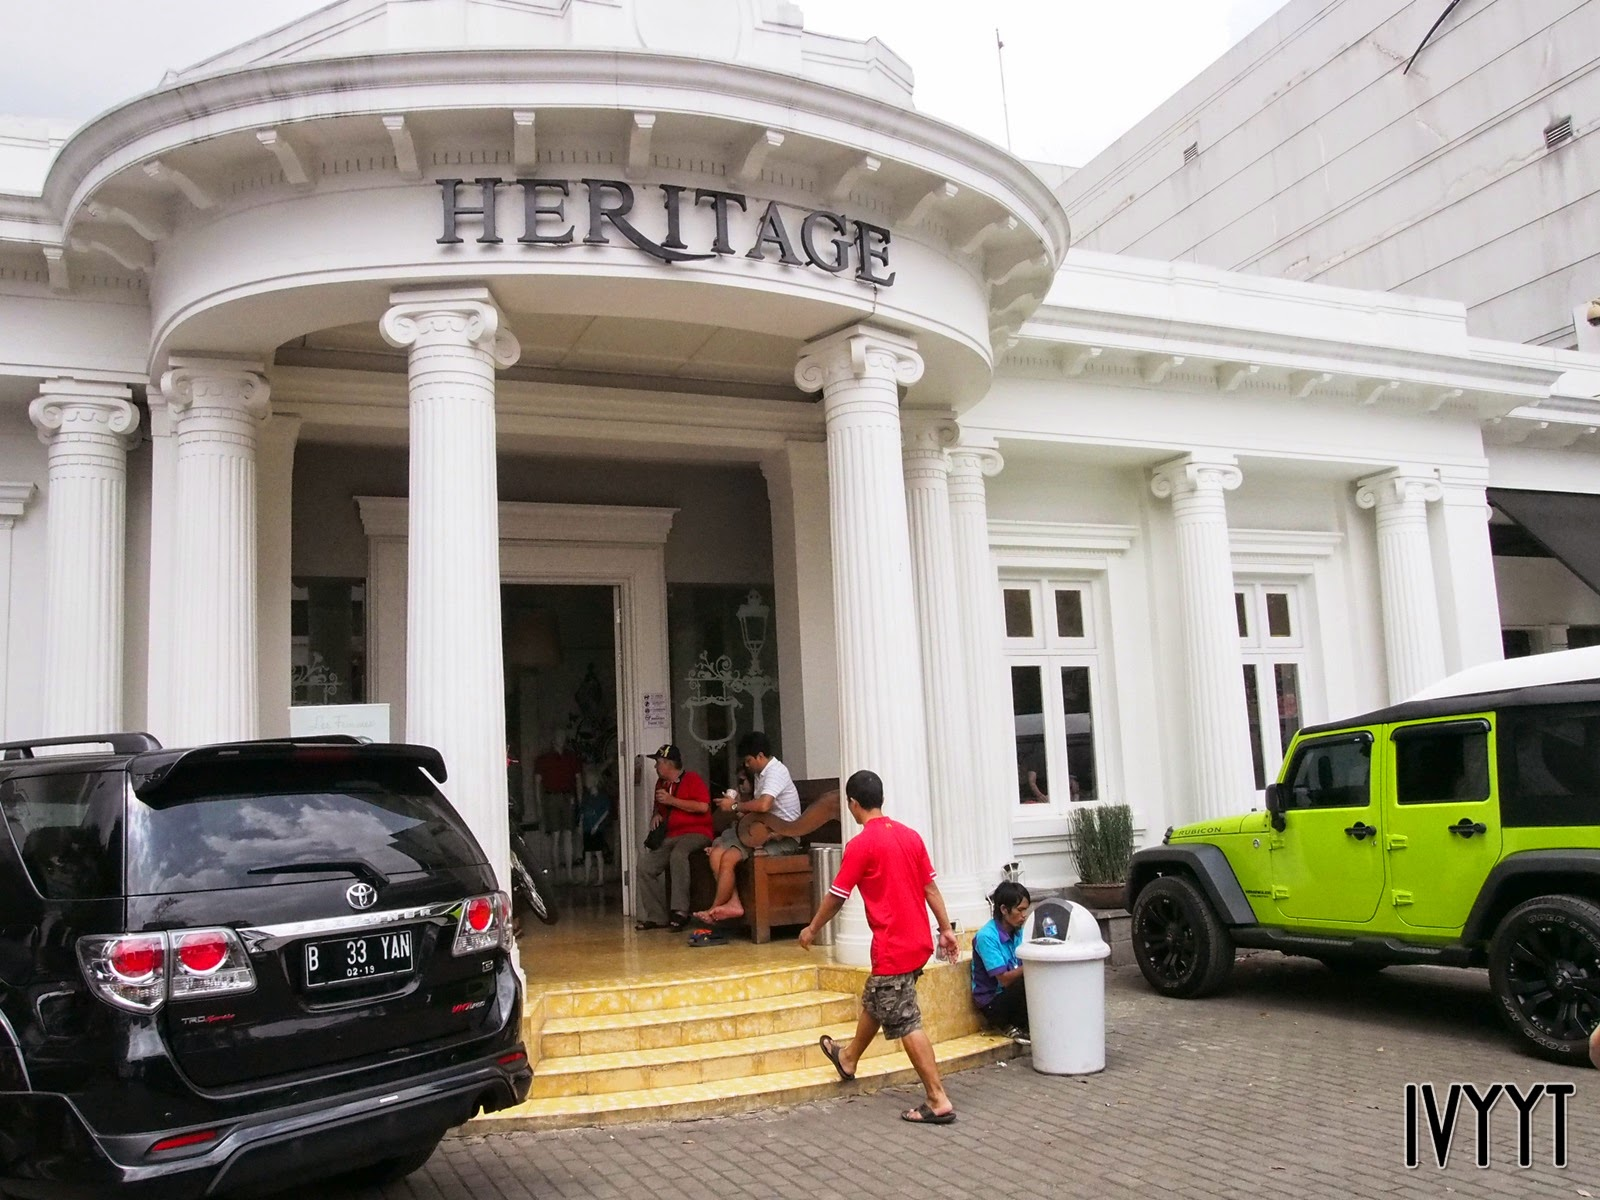 Heritage Factory Outlet, Heritage Bandung, Factory Outlet di Bandung, Bandung, Kota Bandung, Dolan Dolen, Dolaners Heritage Factory Outlet via ivyyt - Dolan Dolen